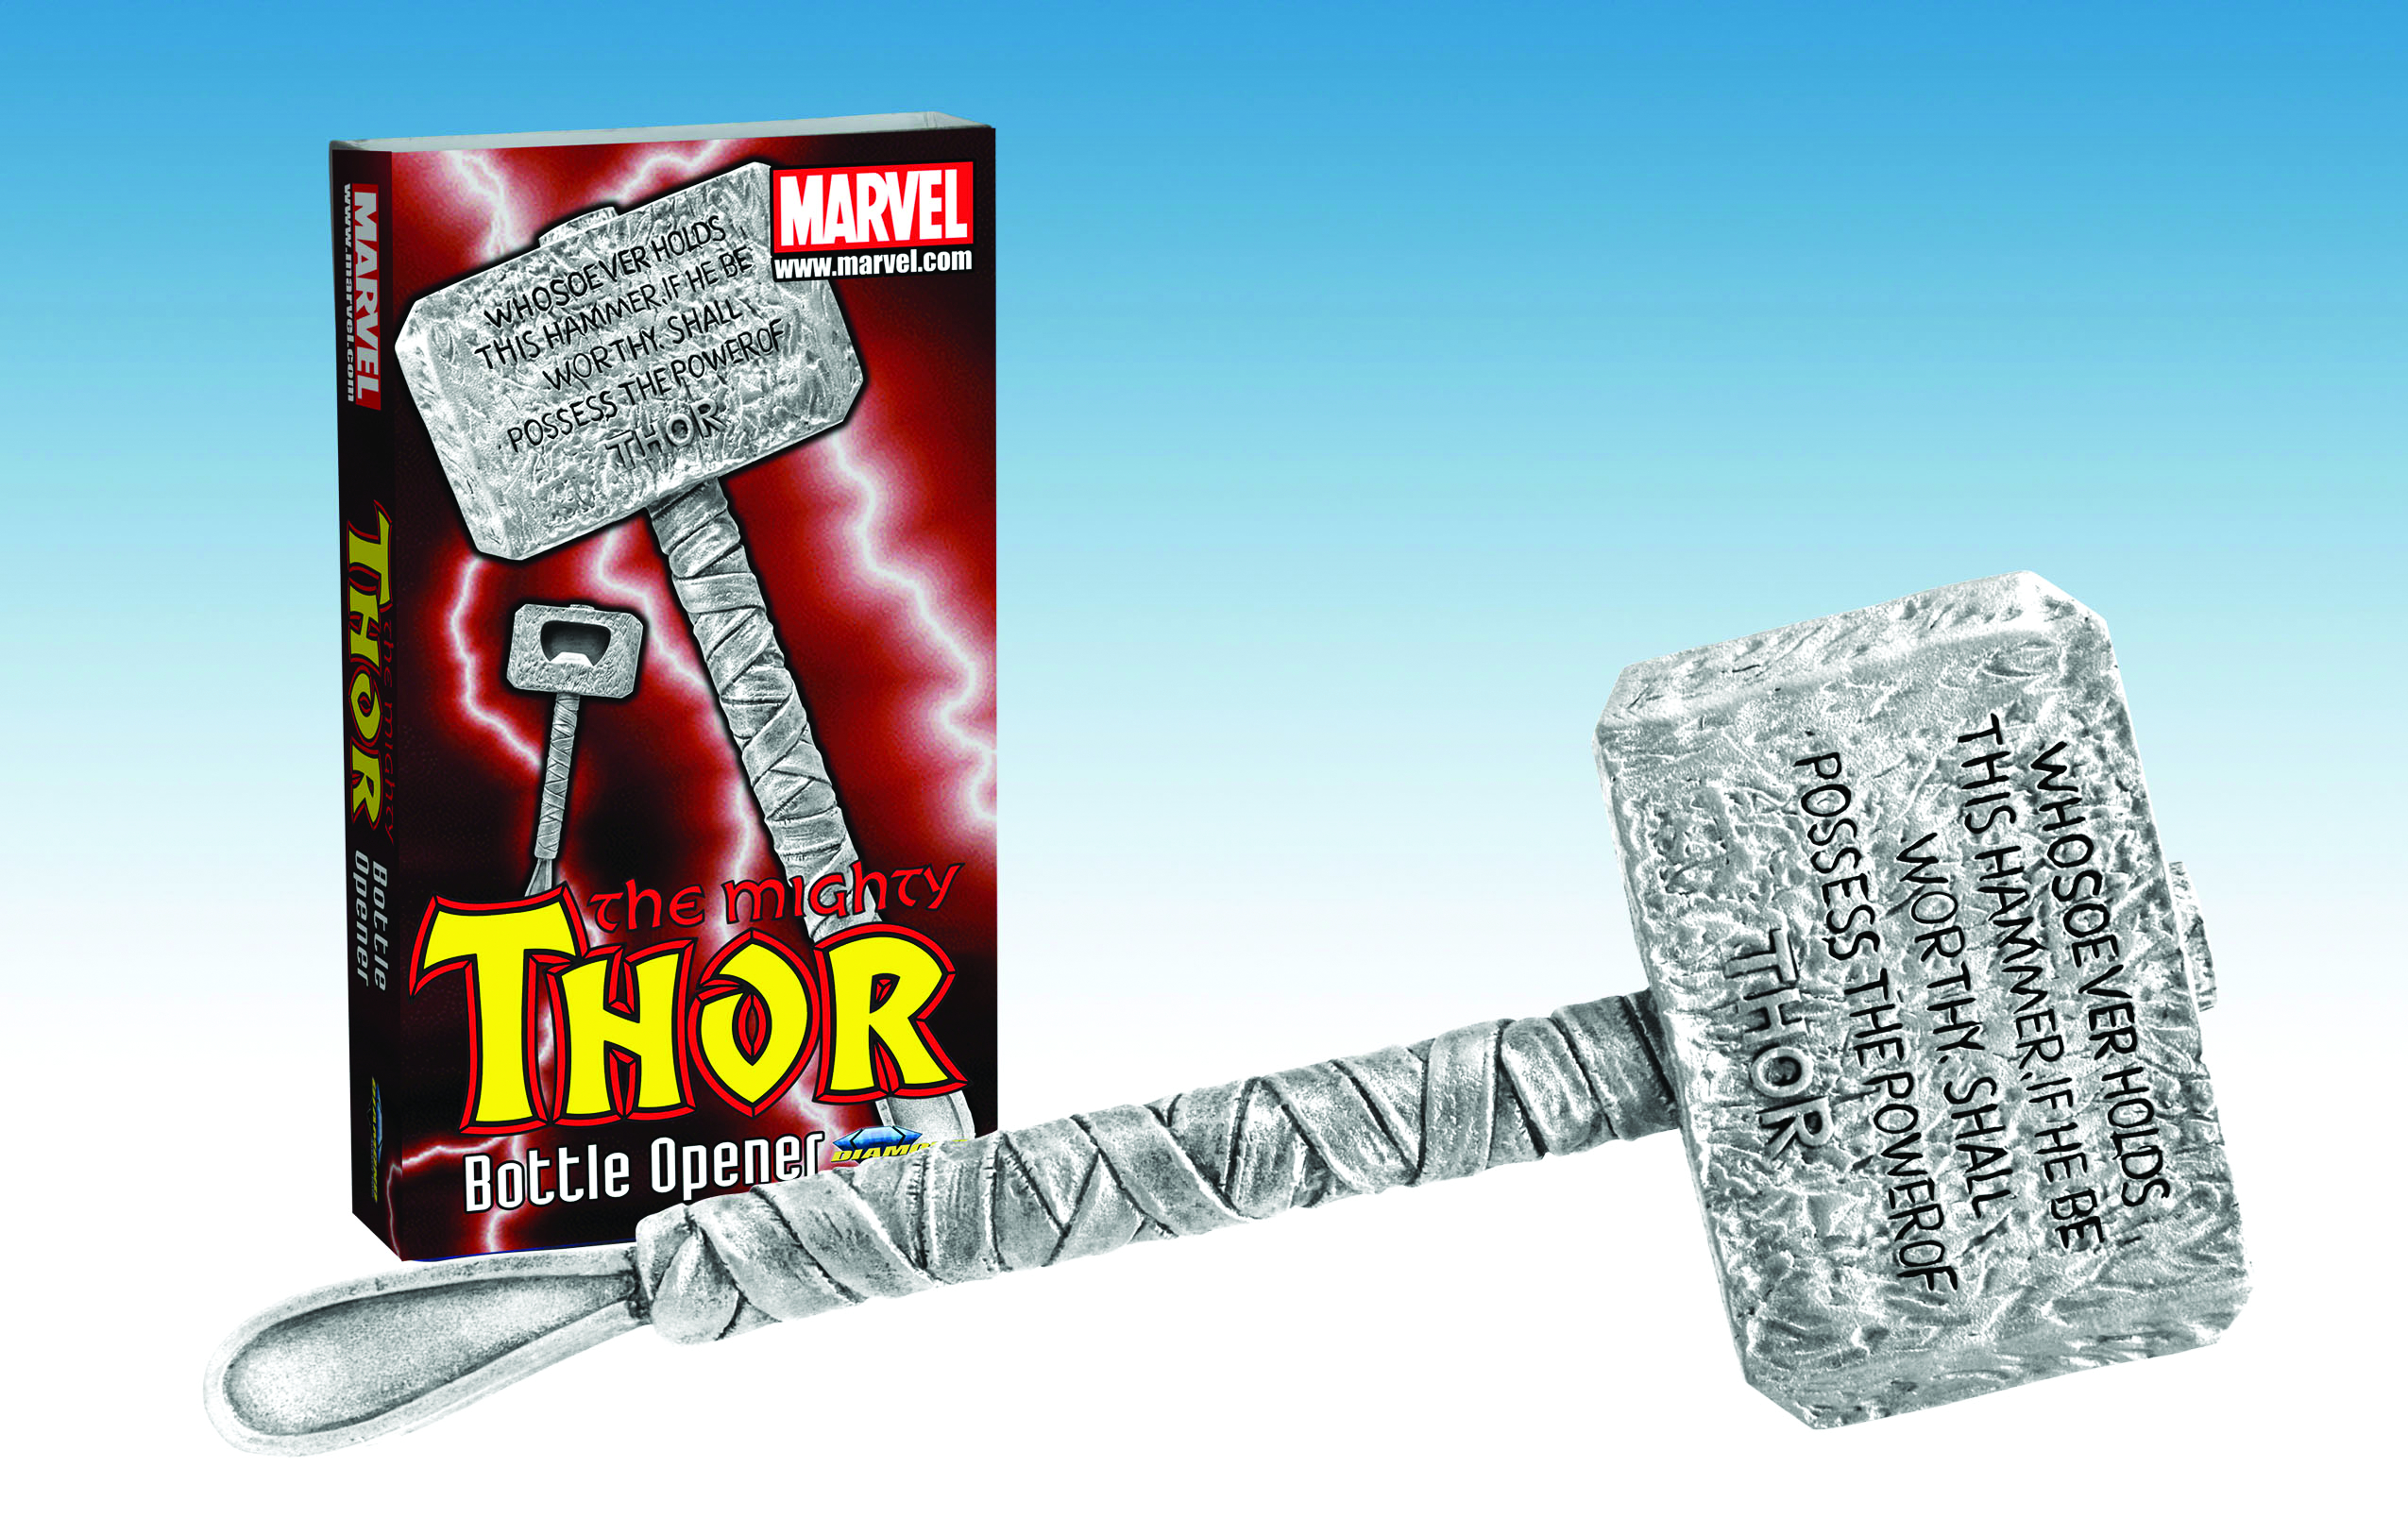 MARVEL THOR BOTTLE OPENER